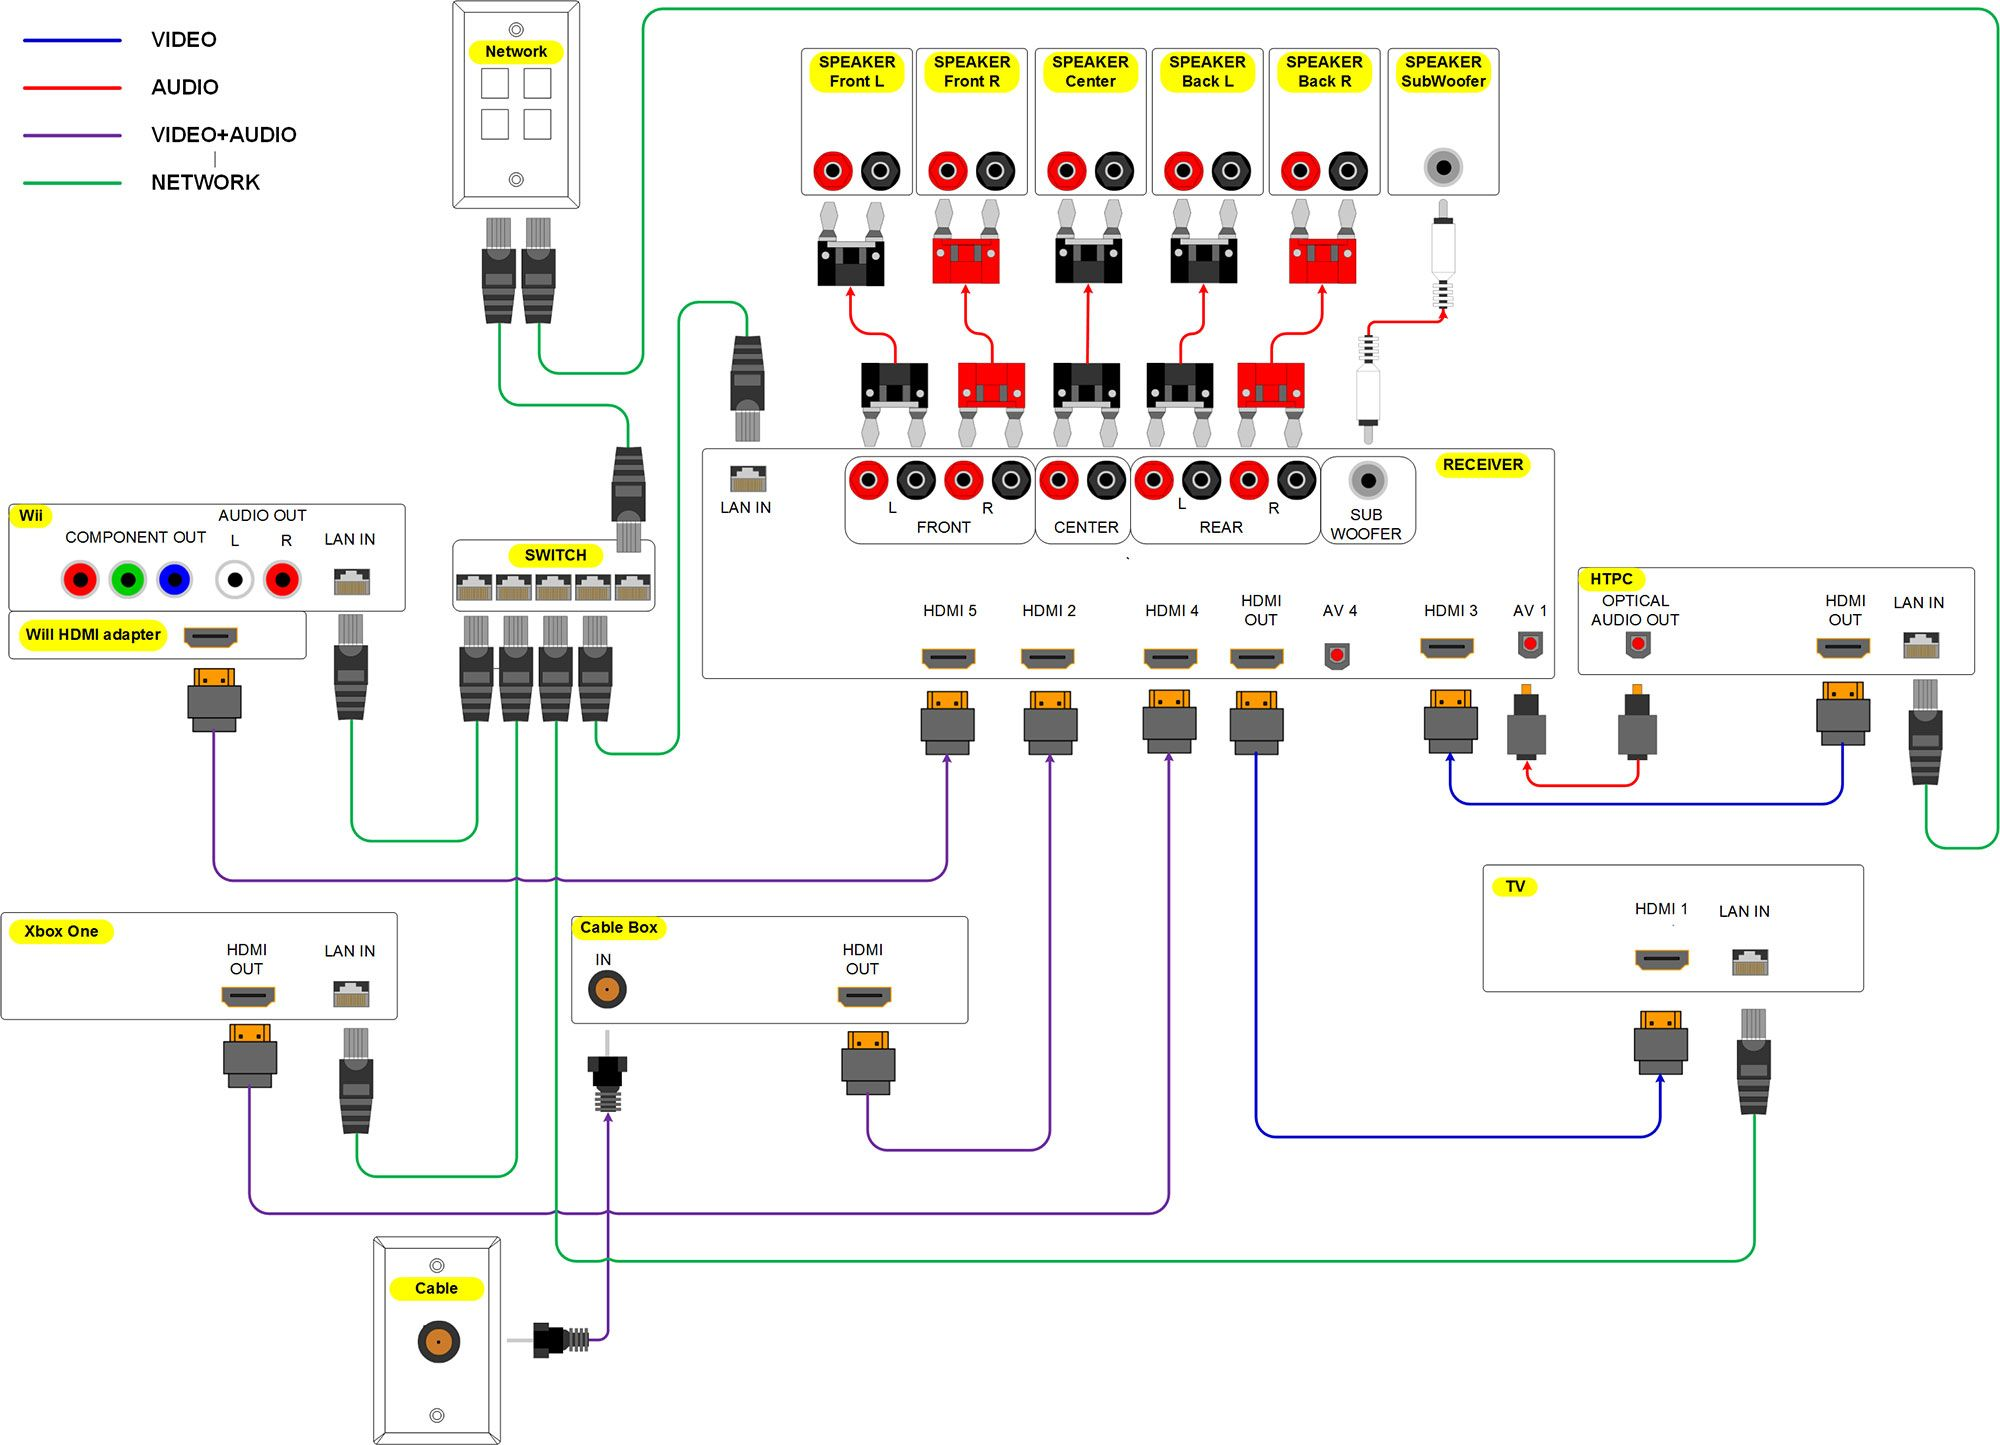 ae3ef715ed5d6ac384ec9c2b84075aef home theater wiring diagram home theater projector wiring \u2022 wiring home subwoofer wiring diagrams at n-0.co